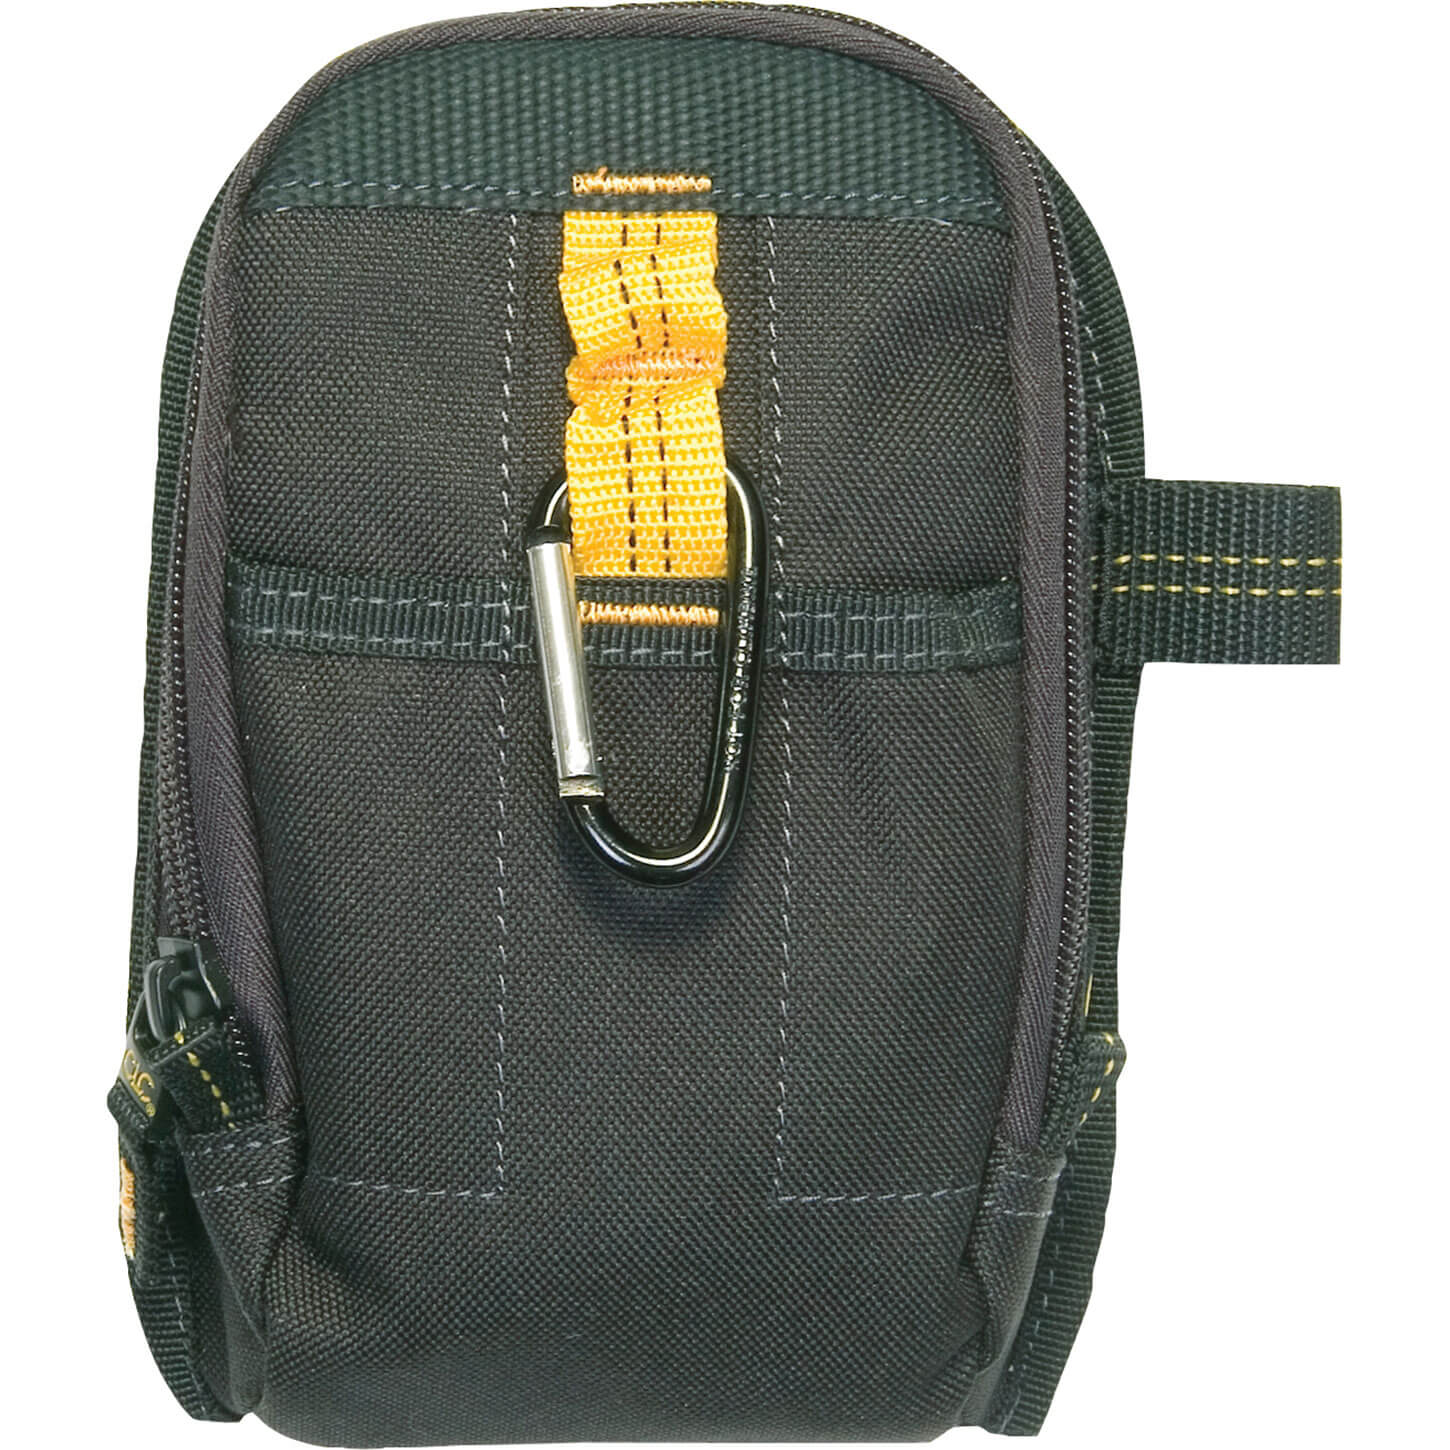 Image of Kunys 9 Pocket Tool Pouch